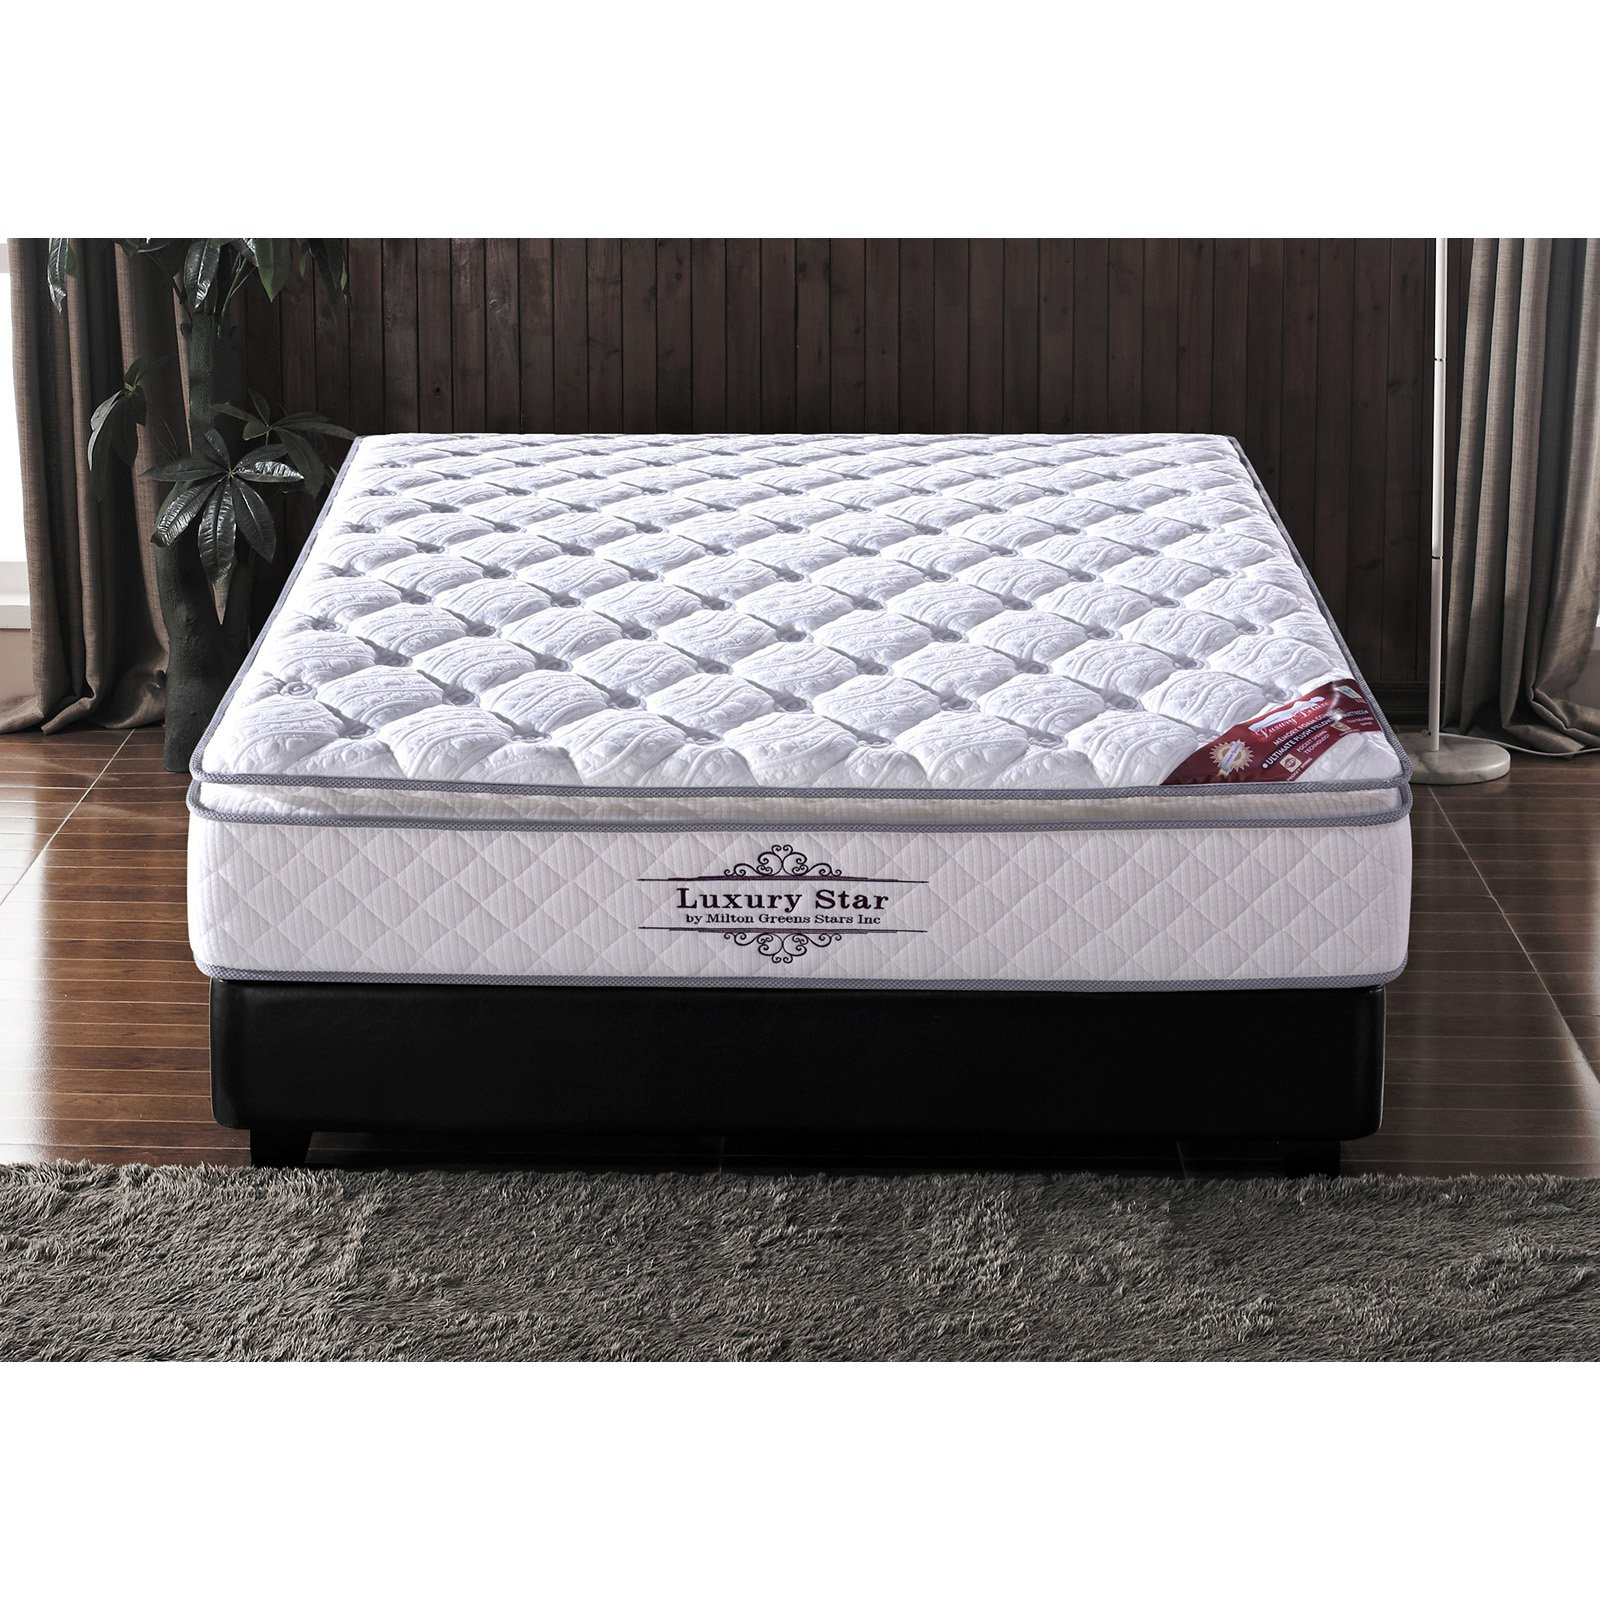 Milton Greens Stars Luxury Star 13 in. Memory Foam and Pocketed Coil Hybrid Mattress